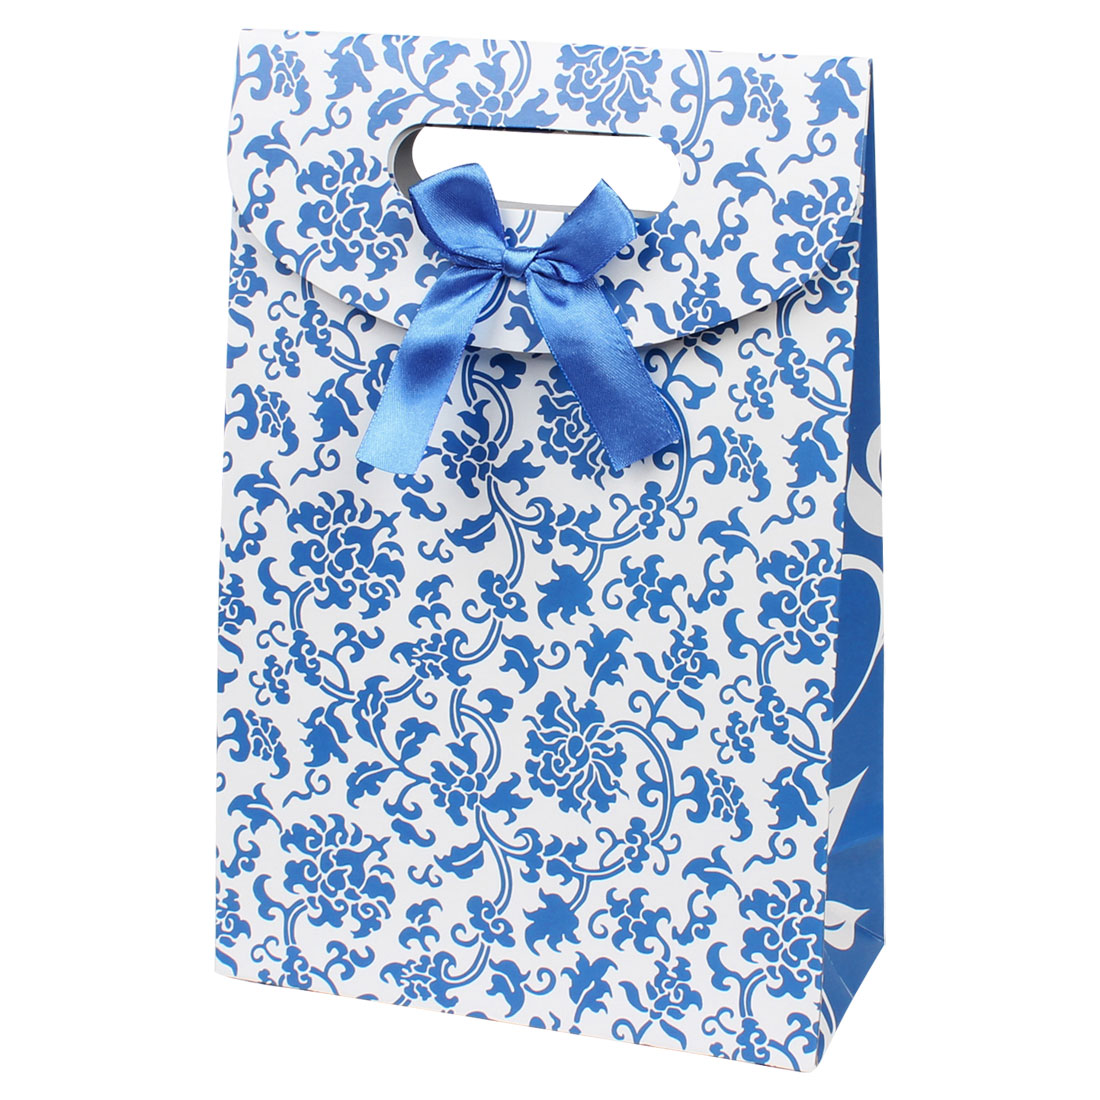 Bow Tie Floral Vines Print Party Gift Carrier Paper Foldup Bag Holder Blue White